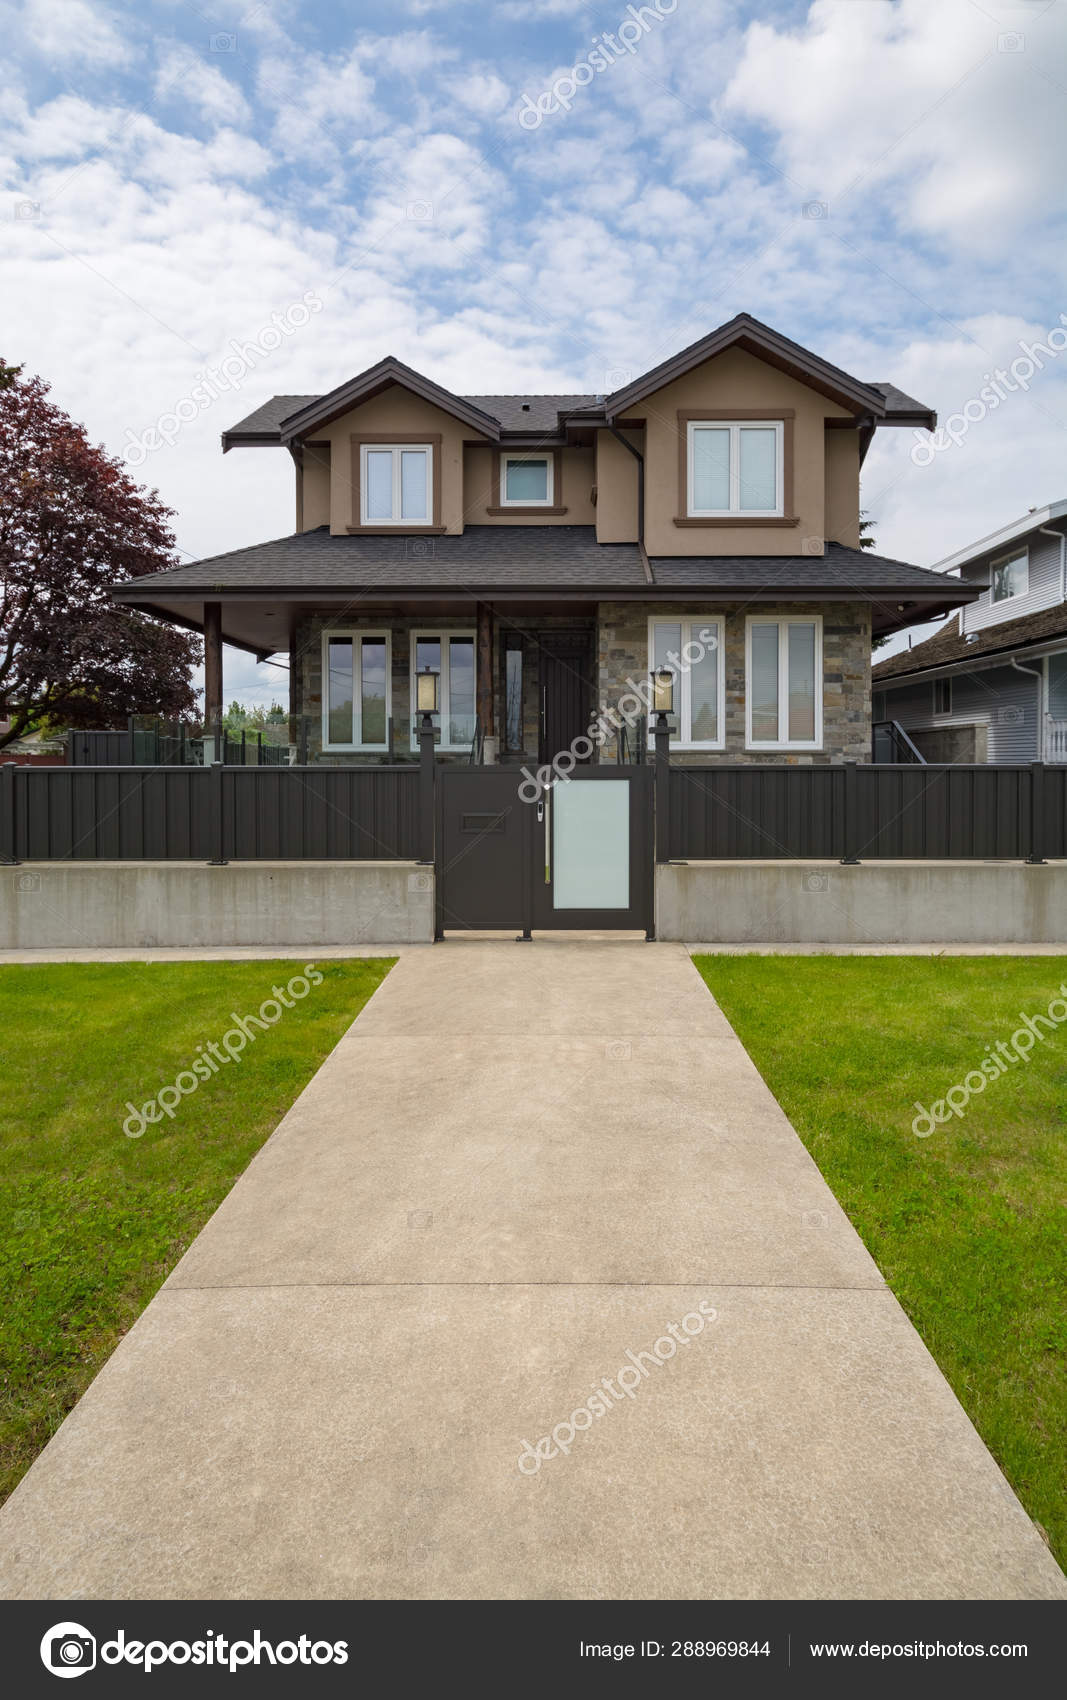 Brand New Luxury Residential House For Sale With Metal Gate And Fence In Front Stock Photo Image By C Imagenet 288969844